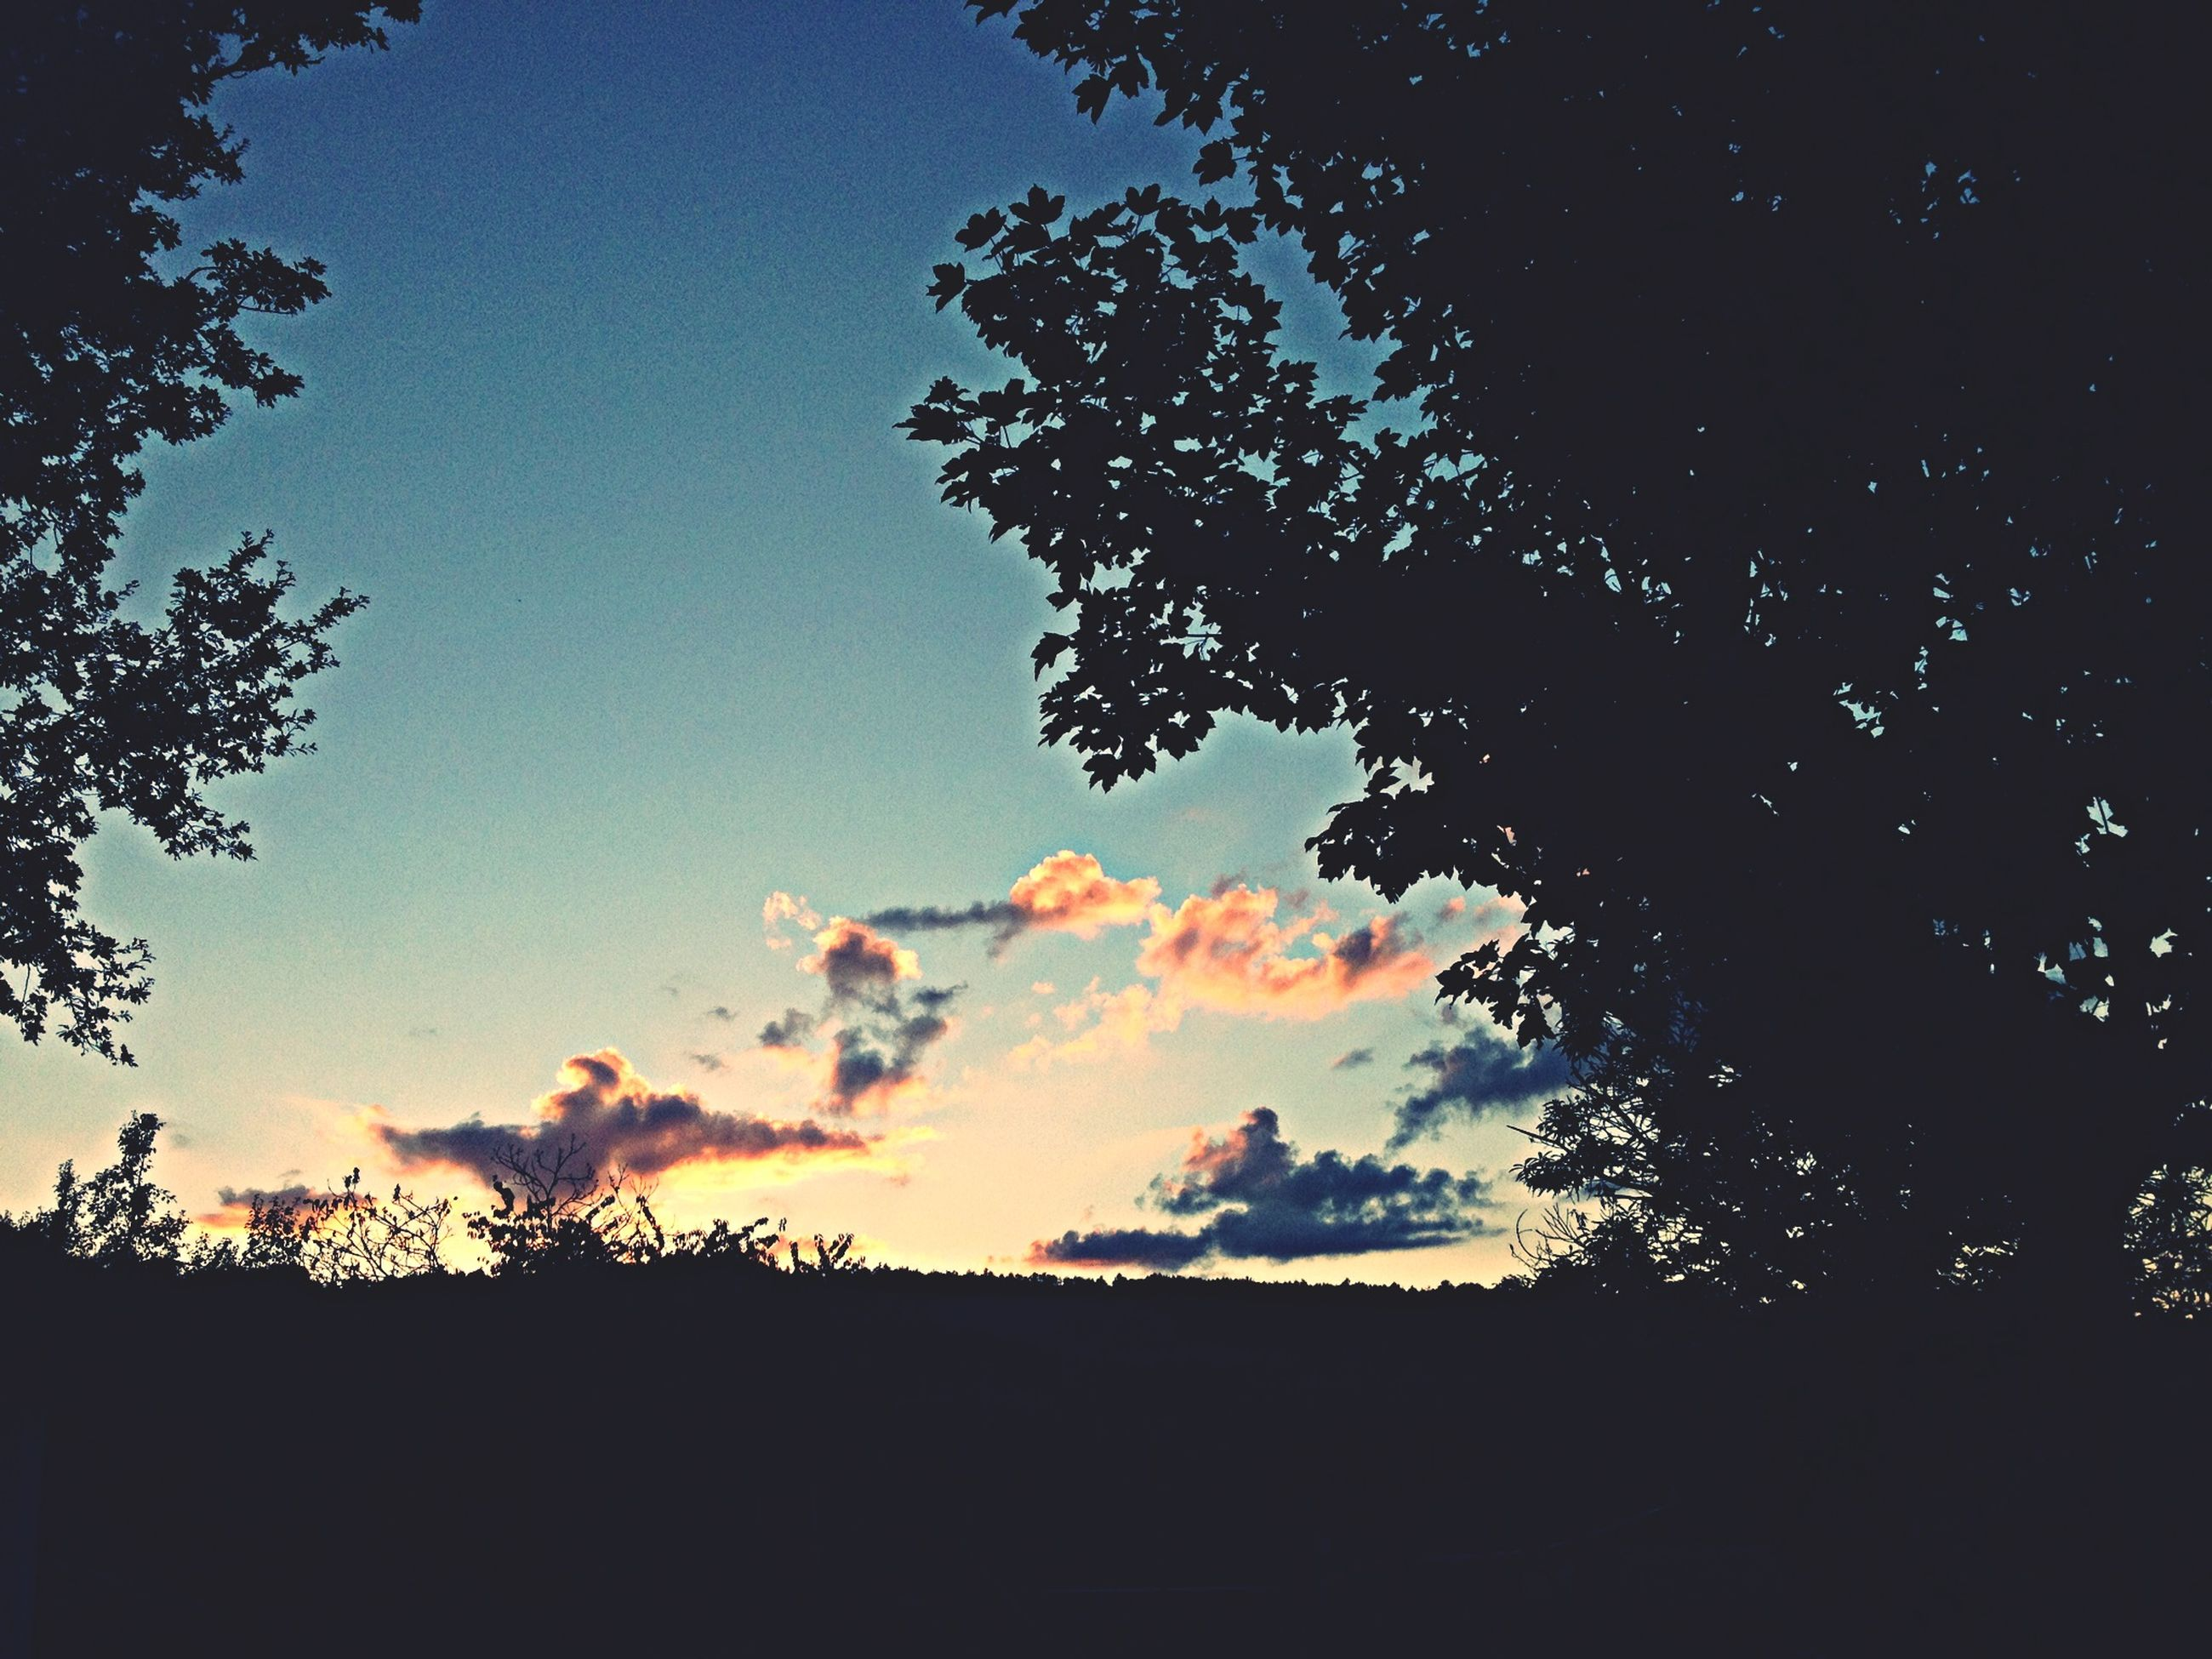 silhouette, tree, beauty in nature, sunset, sky, tranquility, tranquil scene, scenics, nature, growth, low angle view, copy space, landscape, outdoors, idyllic, field, no people, dusk, dark, orange color